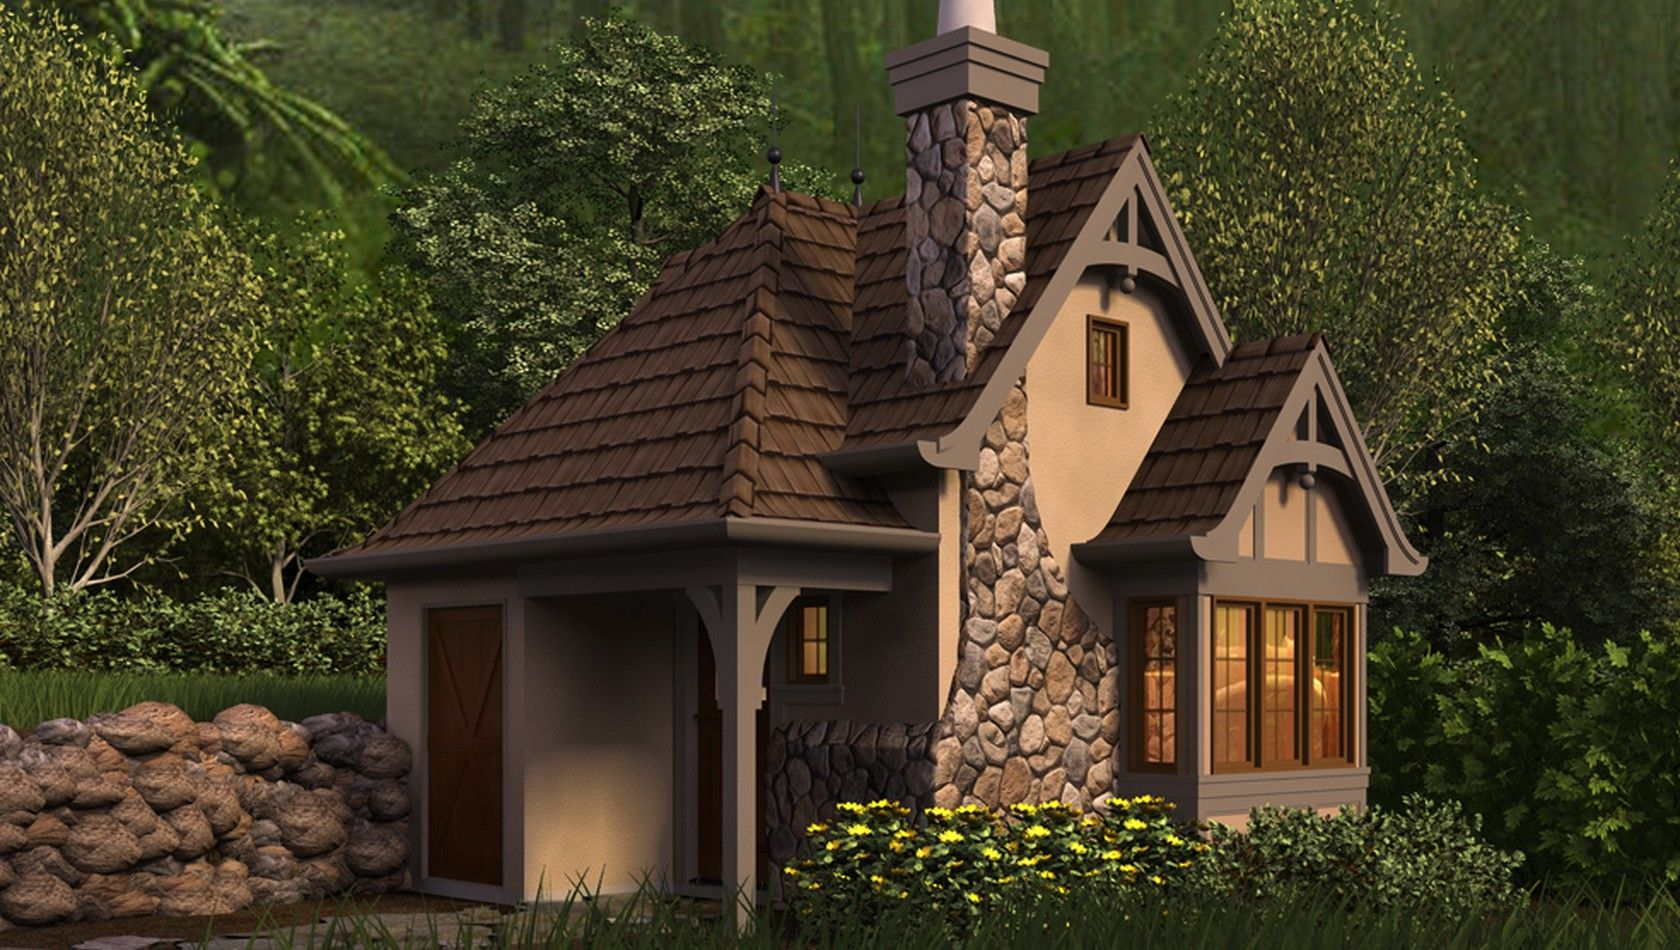 Storybook cottage home plans house of samples style for Storybook cottage plans